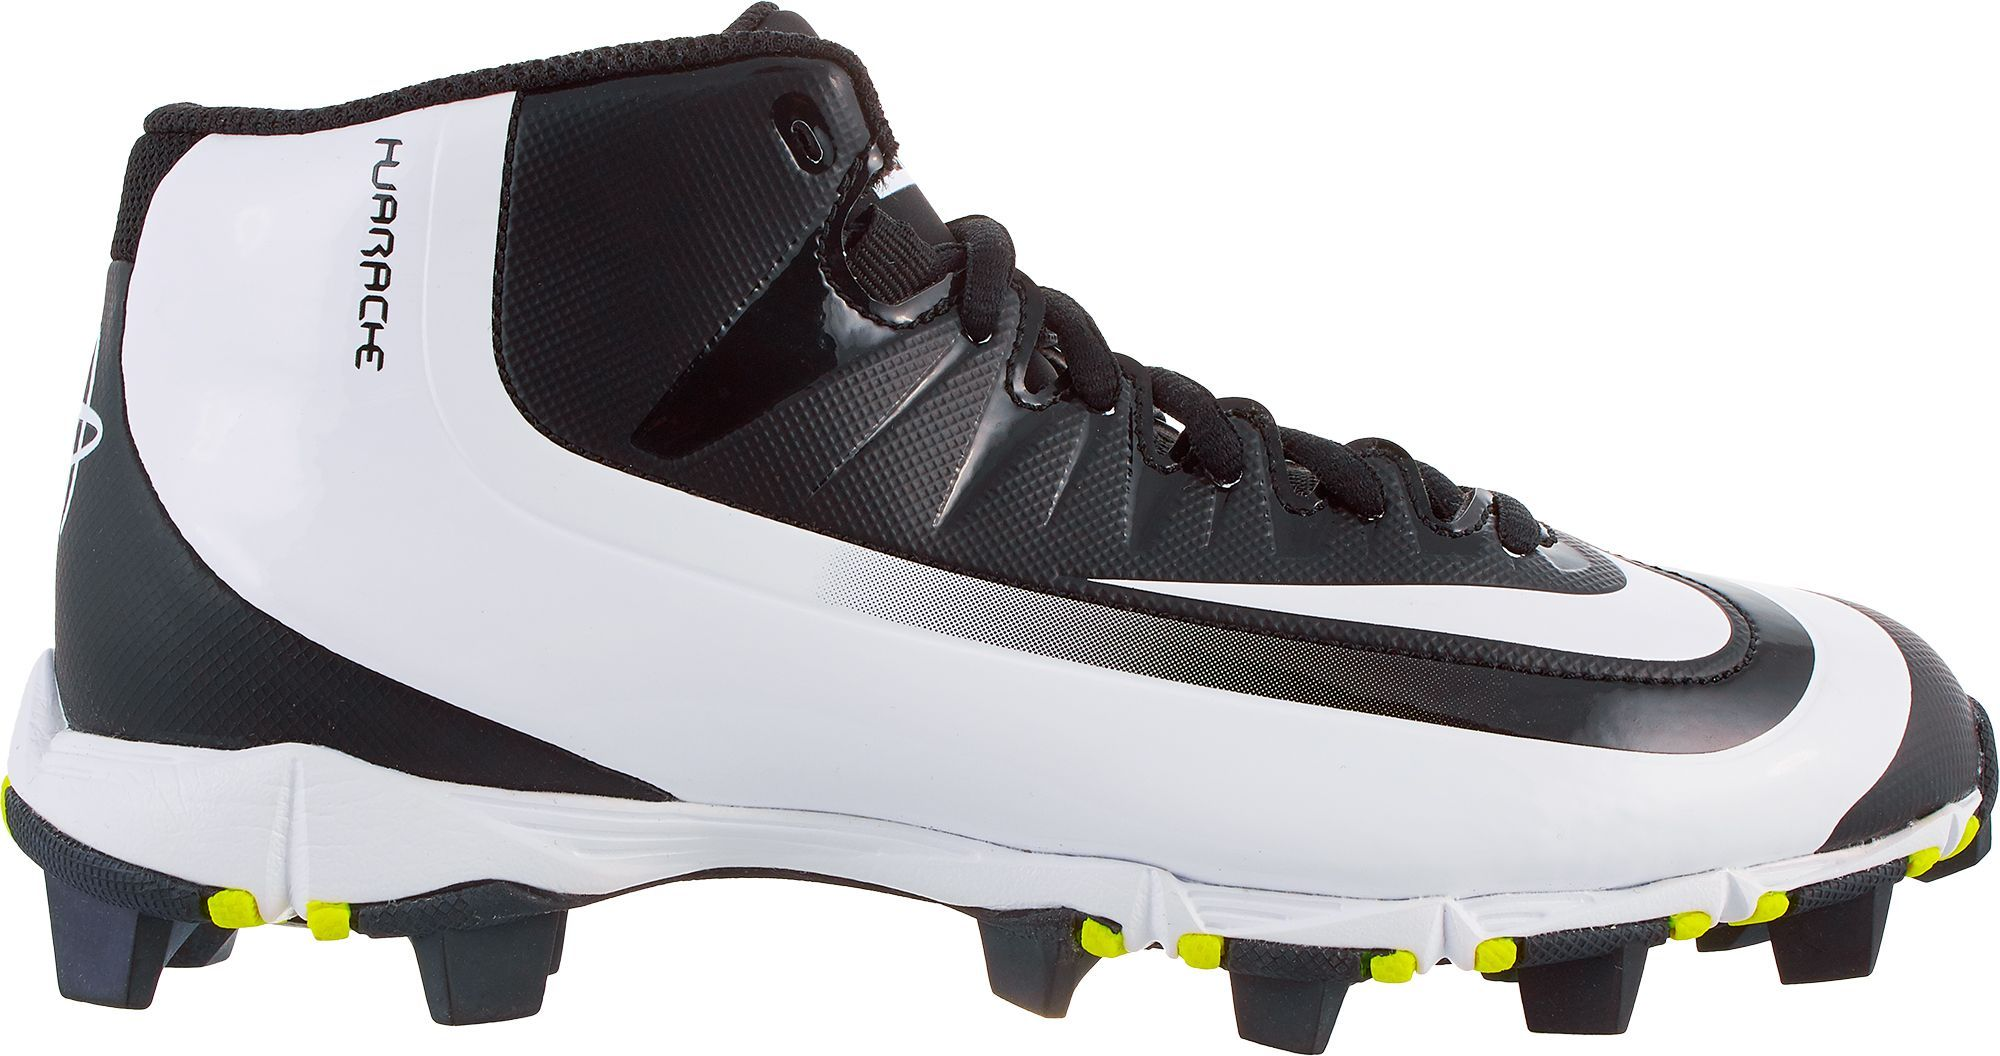 new product efb61 b0195 Nike Kids  Huarache 2KFilth Keystone Mid Baseball Cleats, Kids Unisex,  Size  4.0, Black